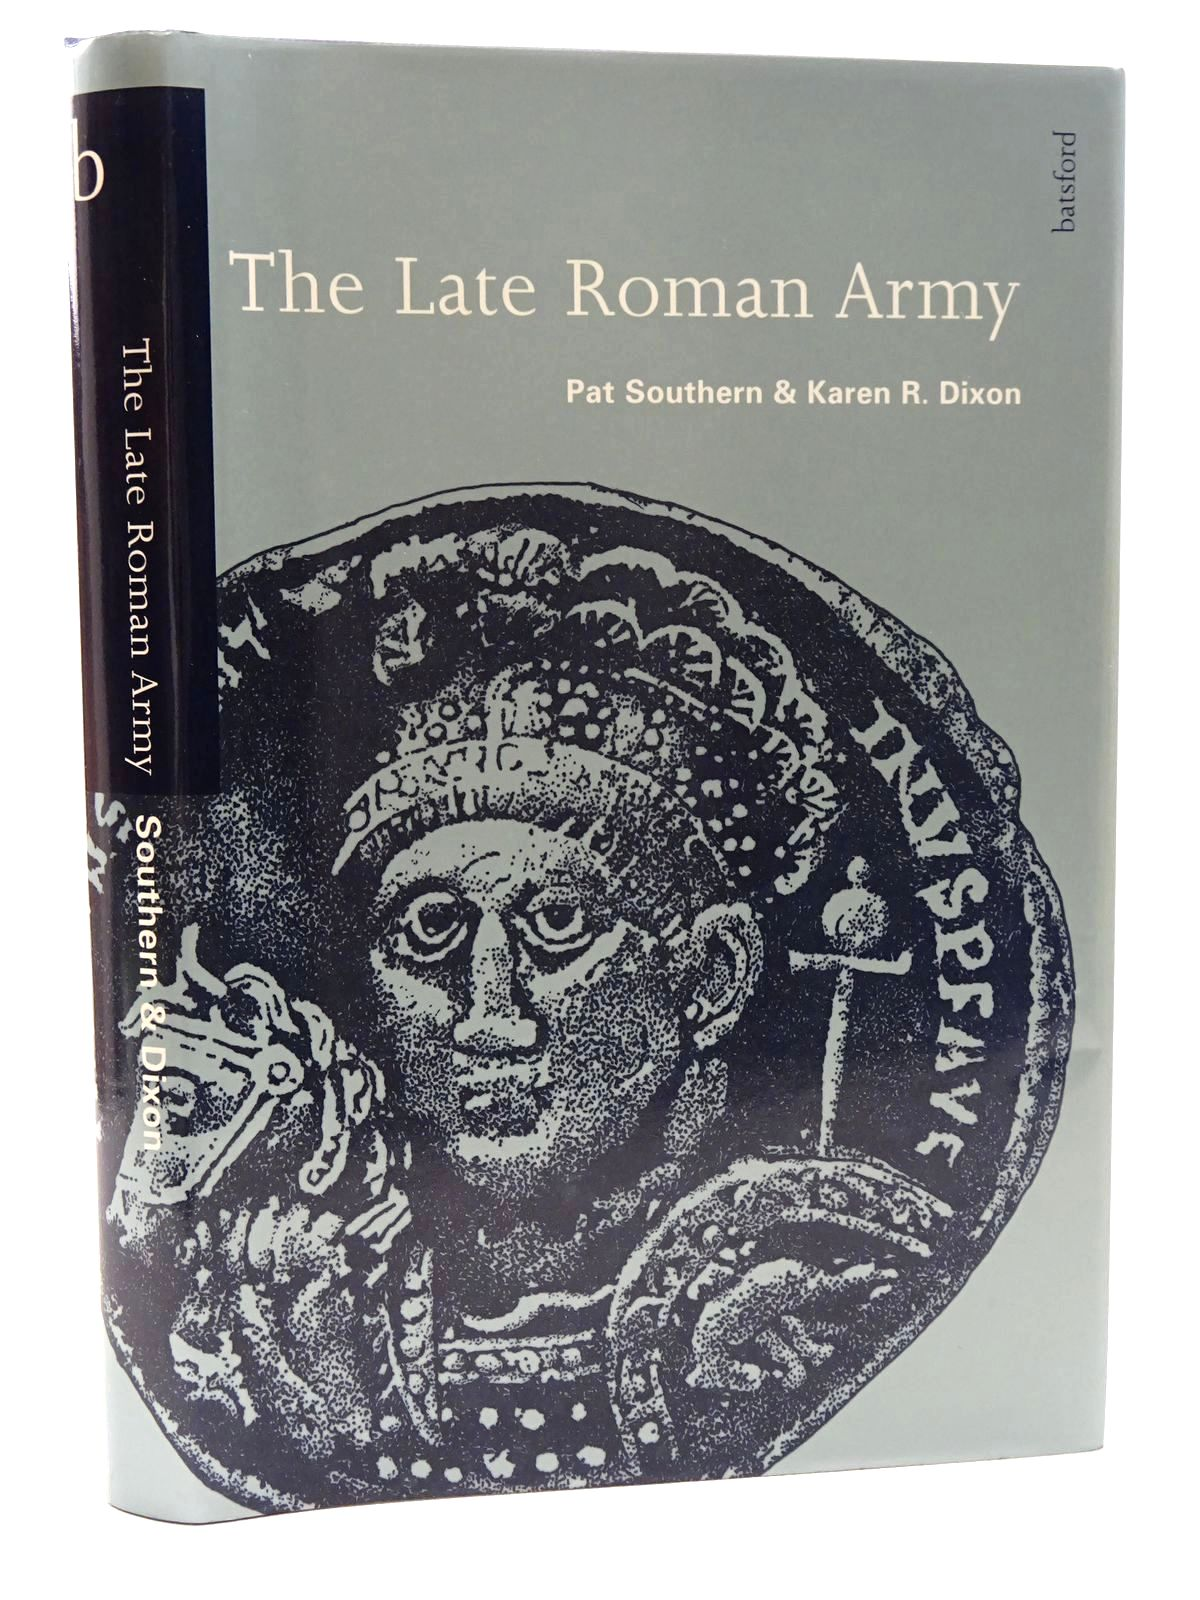 Photo of THE LATE ROMAN ARMY written by Southern, Pat Dixon, Karen R. published by B.T. Batsford Ltd. (STOCK CODE: 1816051)  for sale by Stella & Rose's Books